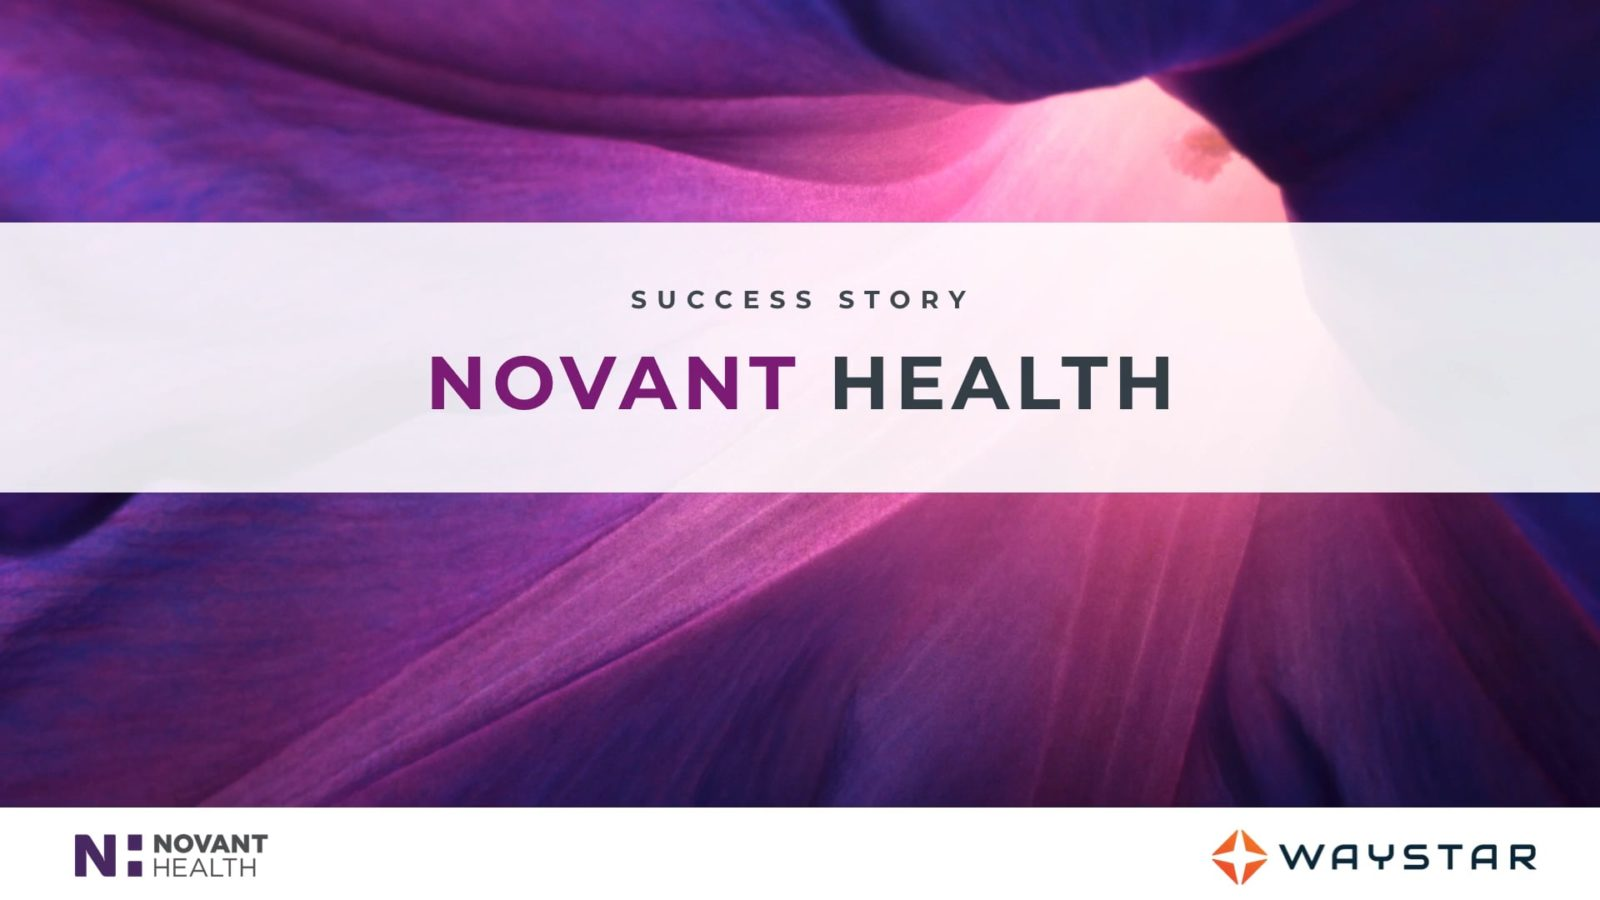 Success story: Novant Health